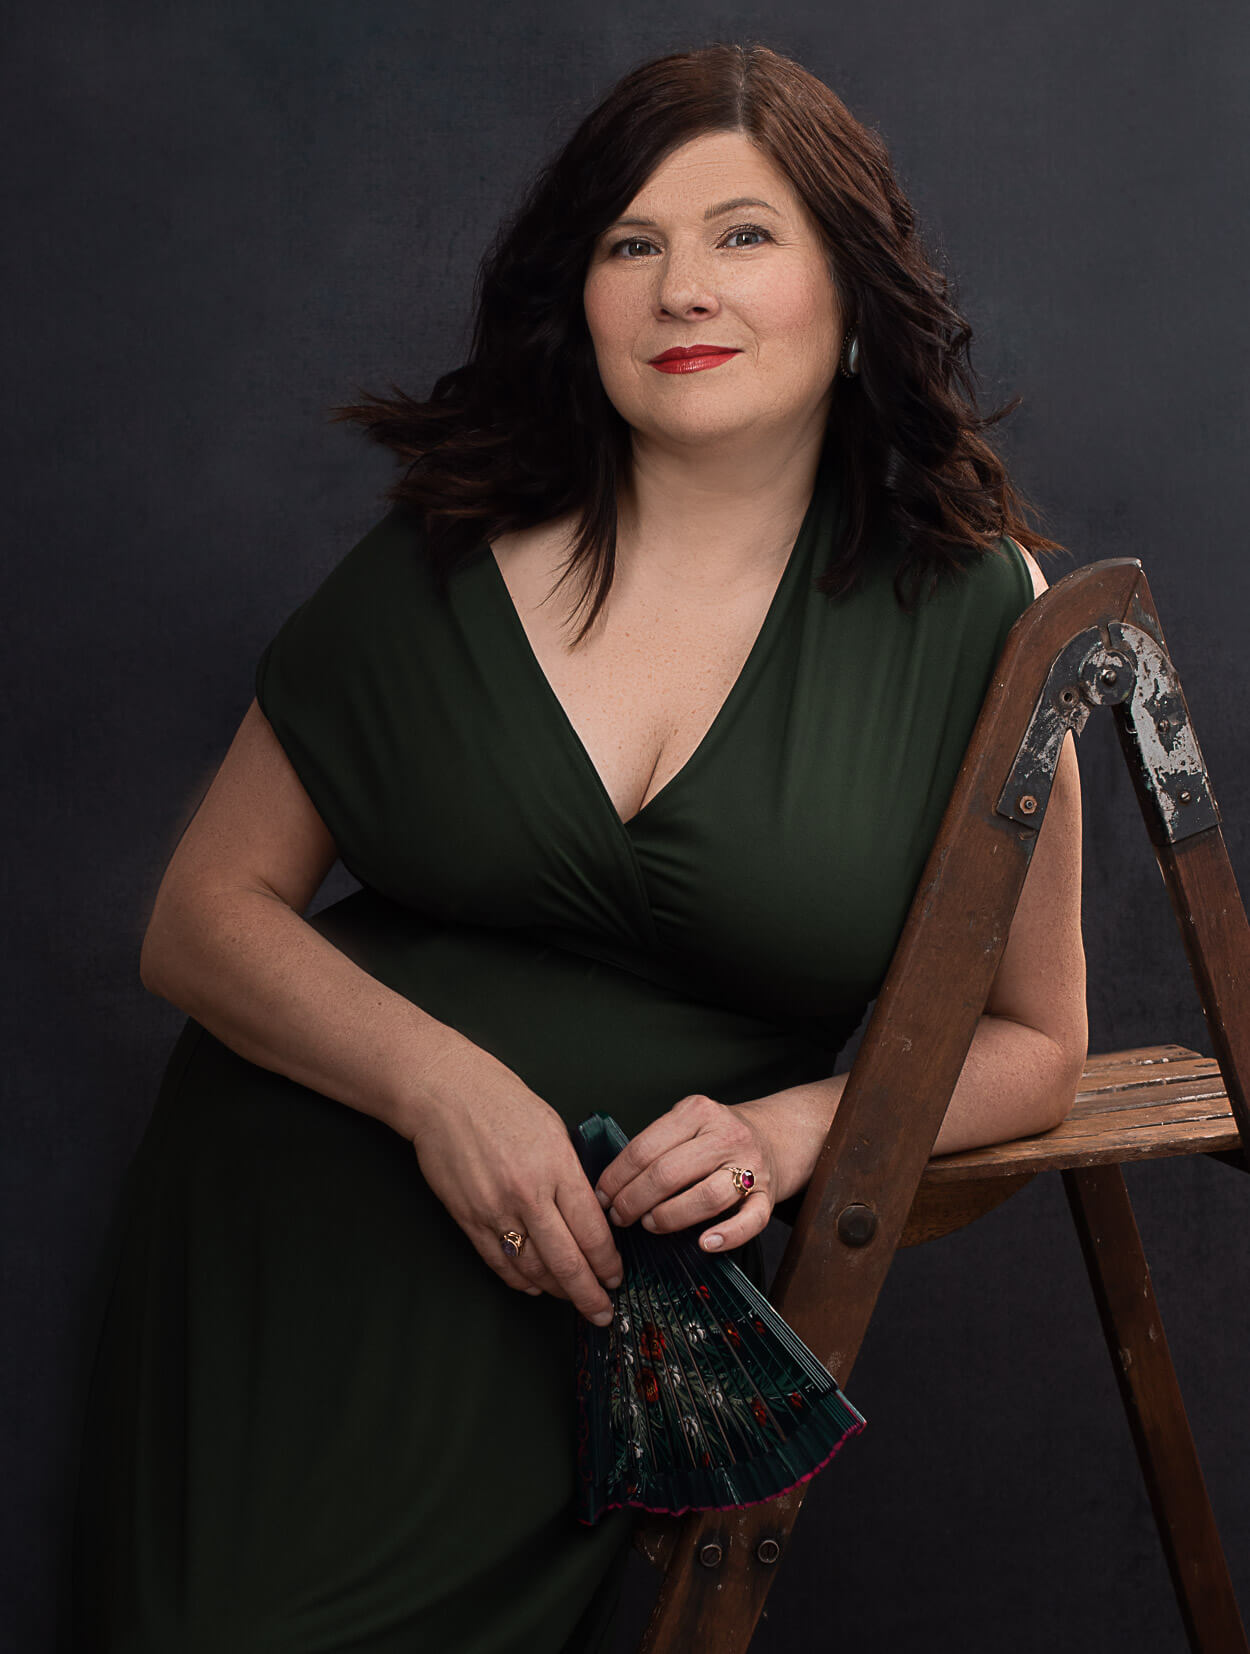 a curvy woman in a green dress leaning against the ladder